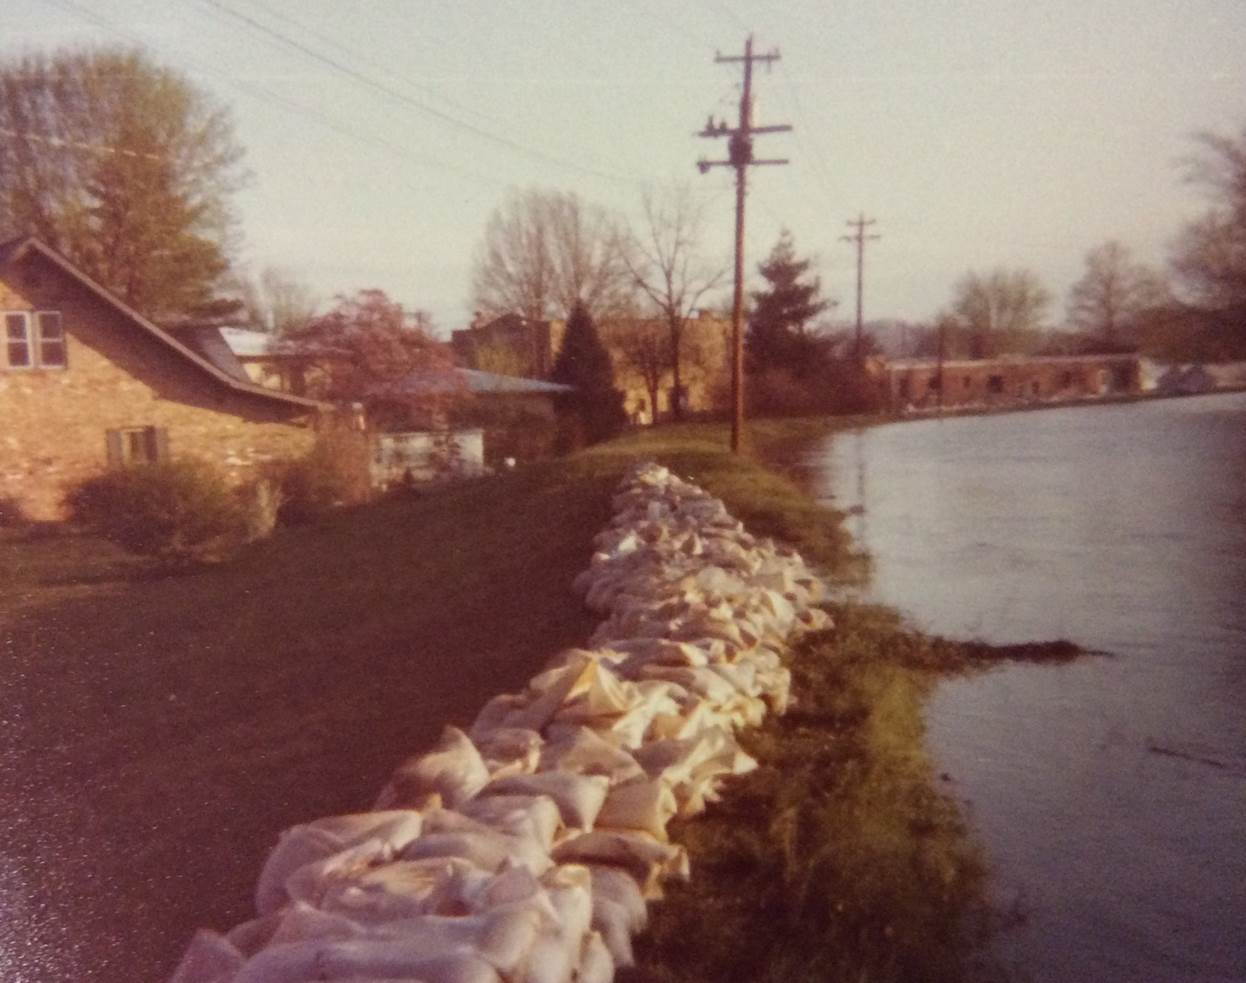 The East Kentucky Flood of April 1977